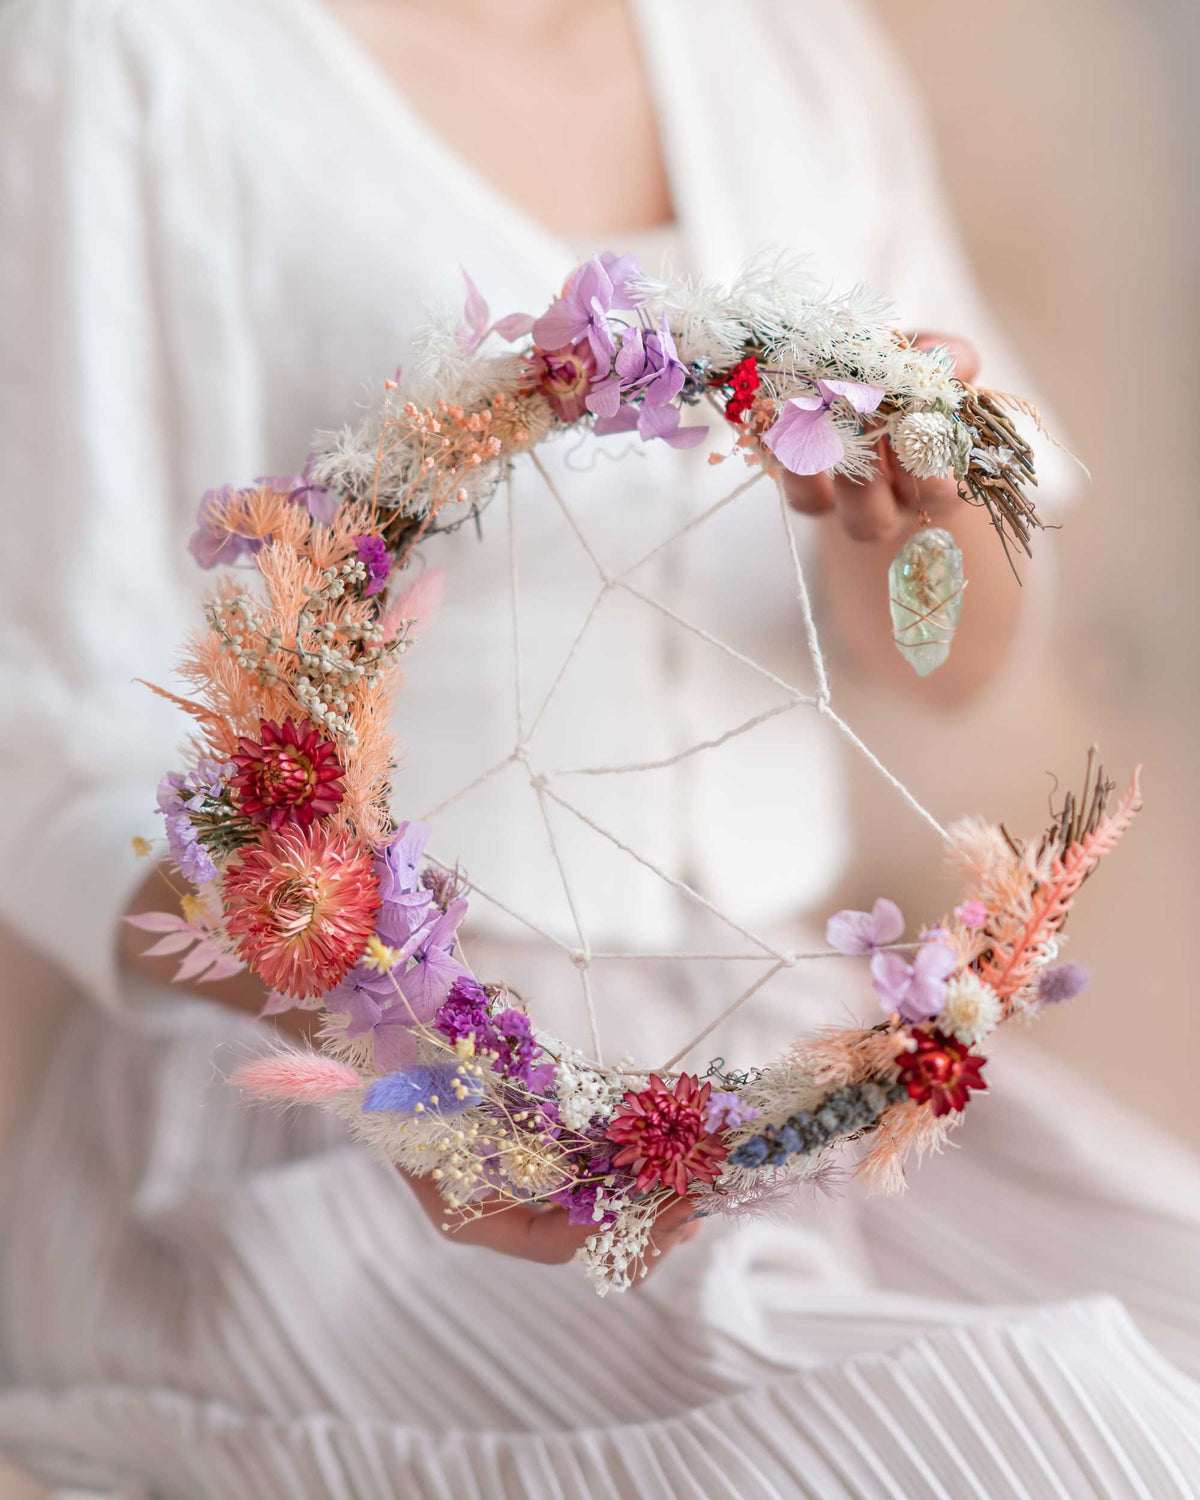 Crystal & Flowers DreamCatcher DIY Pack